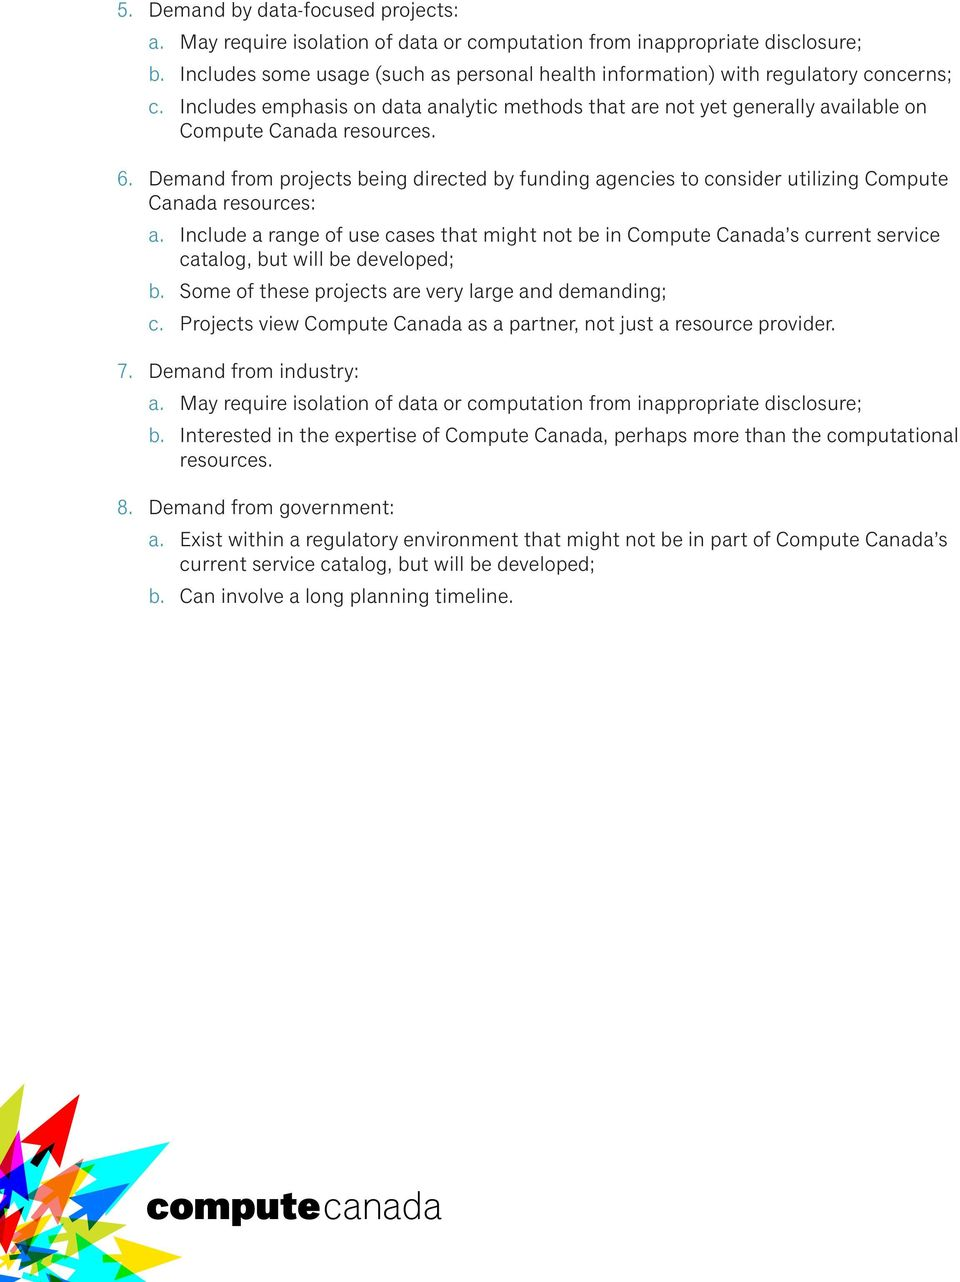 Demand from projects being directed by funding agencies to consider utilizing Compute Canada resources: a.